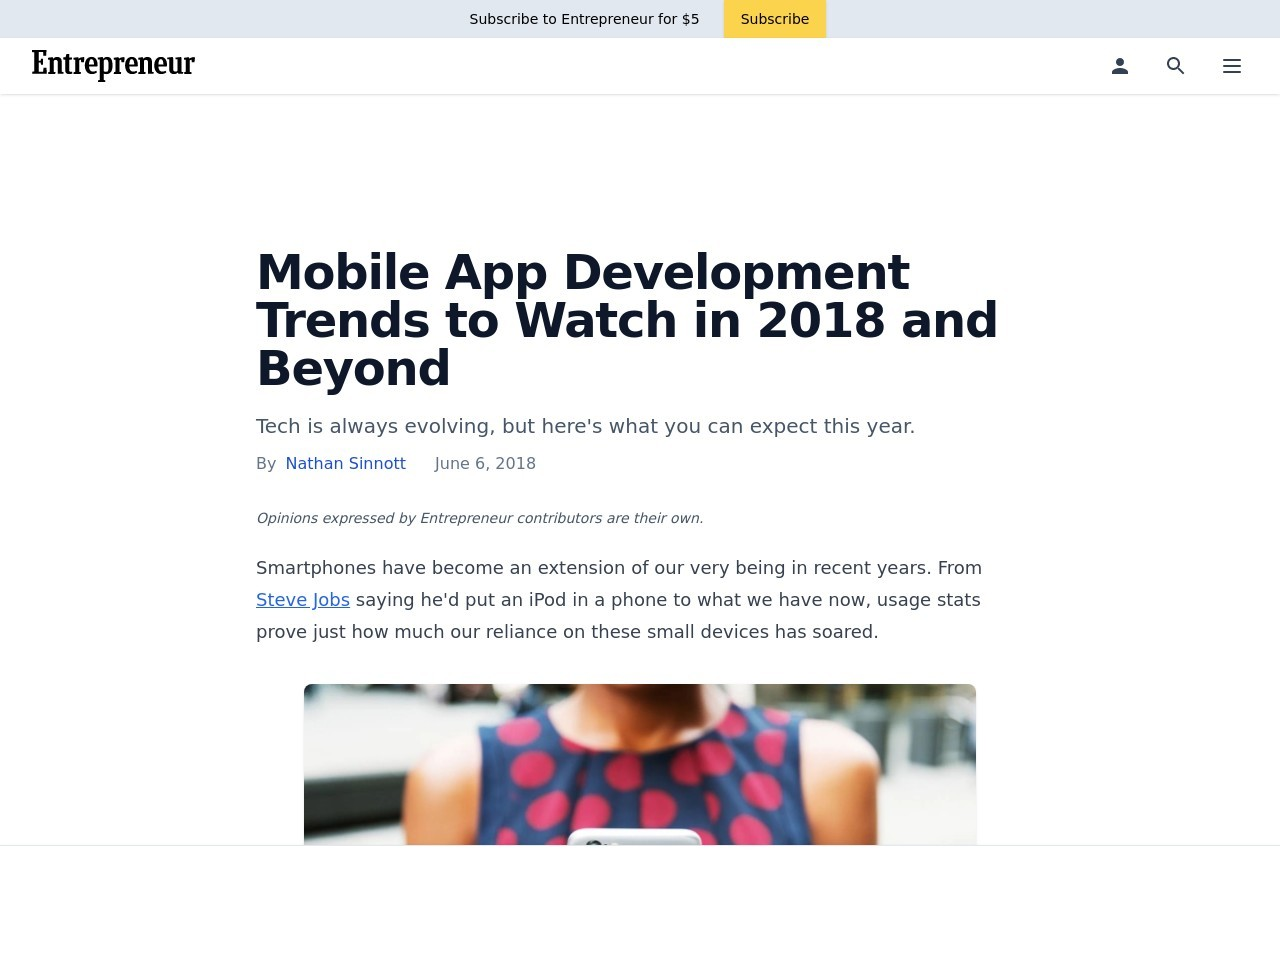 Mobile App Development Trends to Watch in 2018 and Beyond